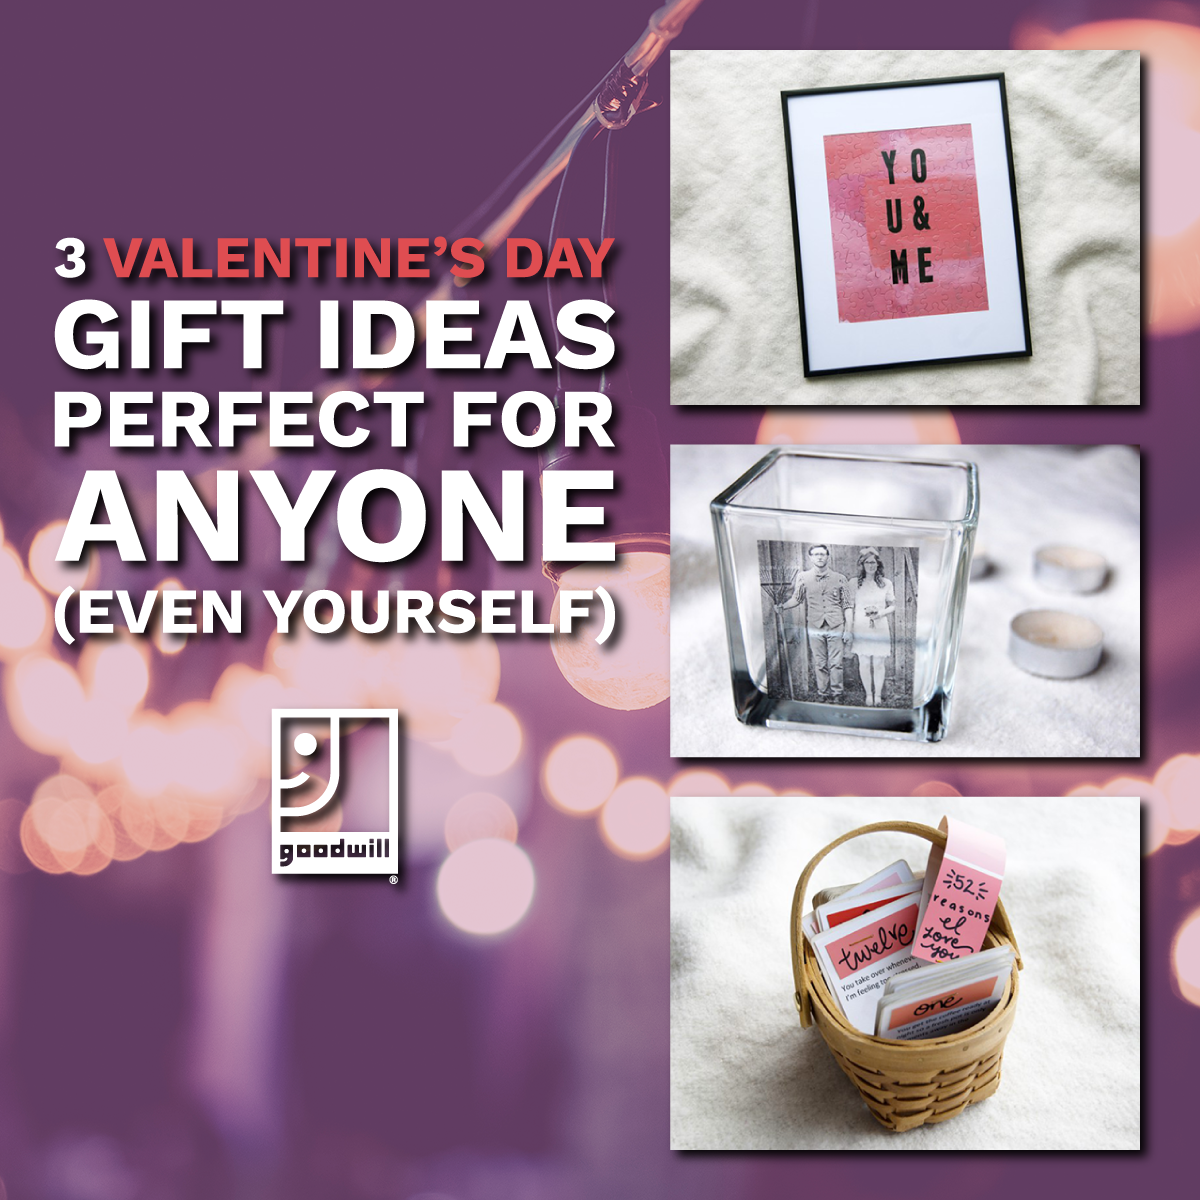 3 Valentine's Day Gift Ideas Perfect for Anyone (Even Yourself)